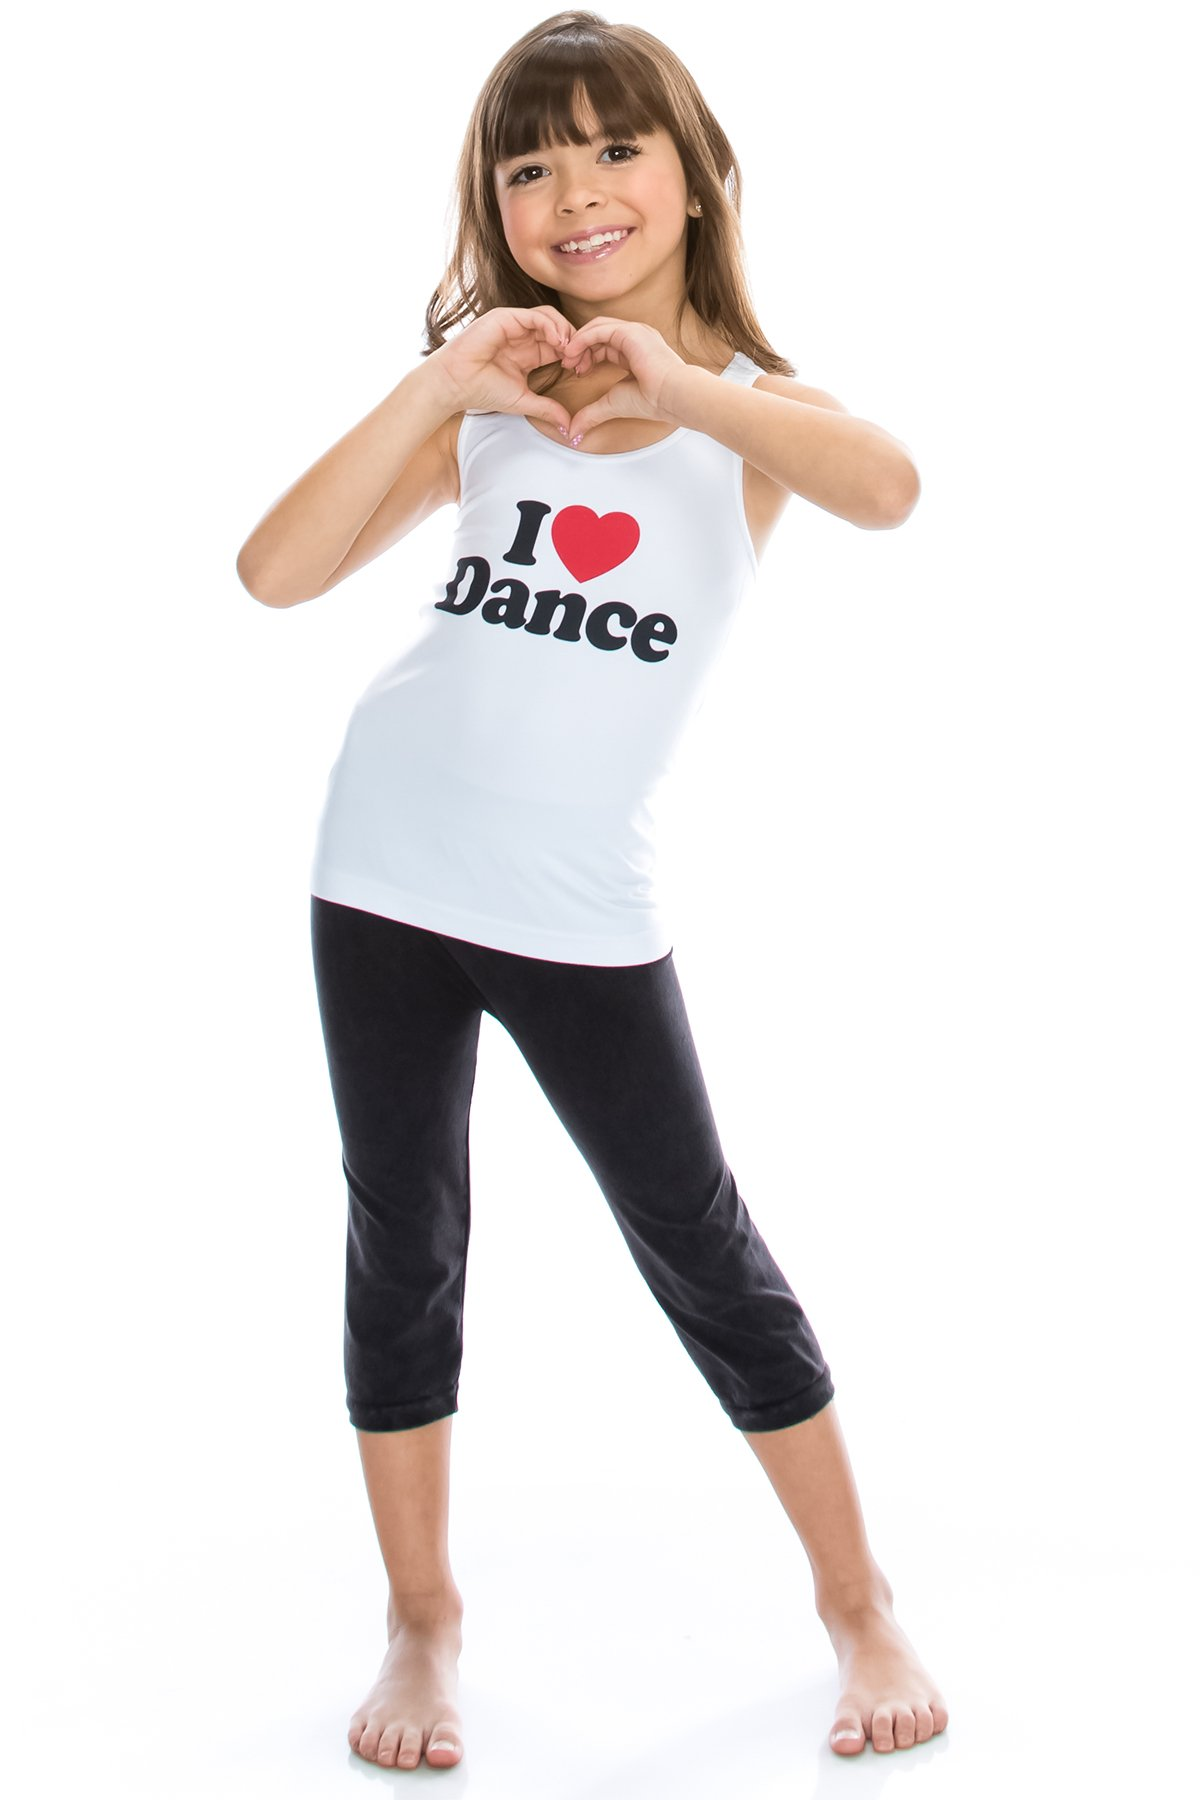 Kurve Kids 2-Piece Dance Outfit - One Size Age 4 to 9 - Made in USA- (One Size (4-9), I Love Dance Dark Set)